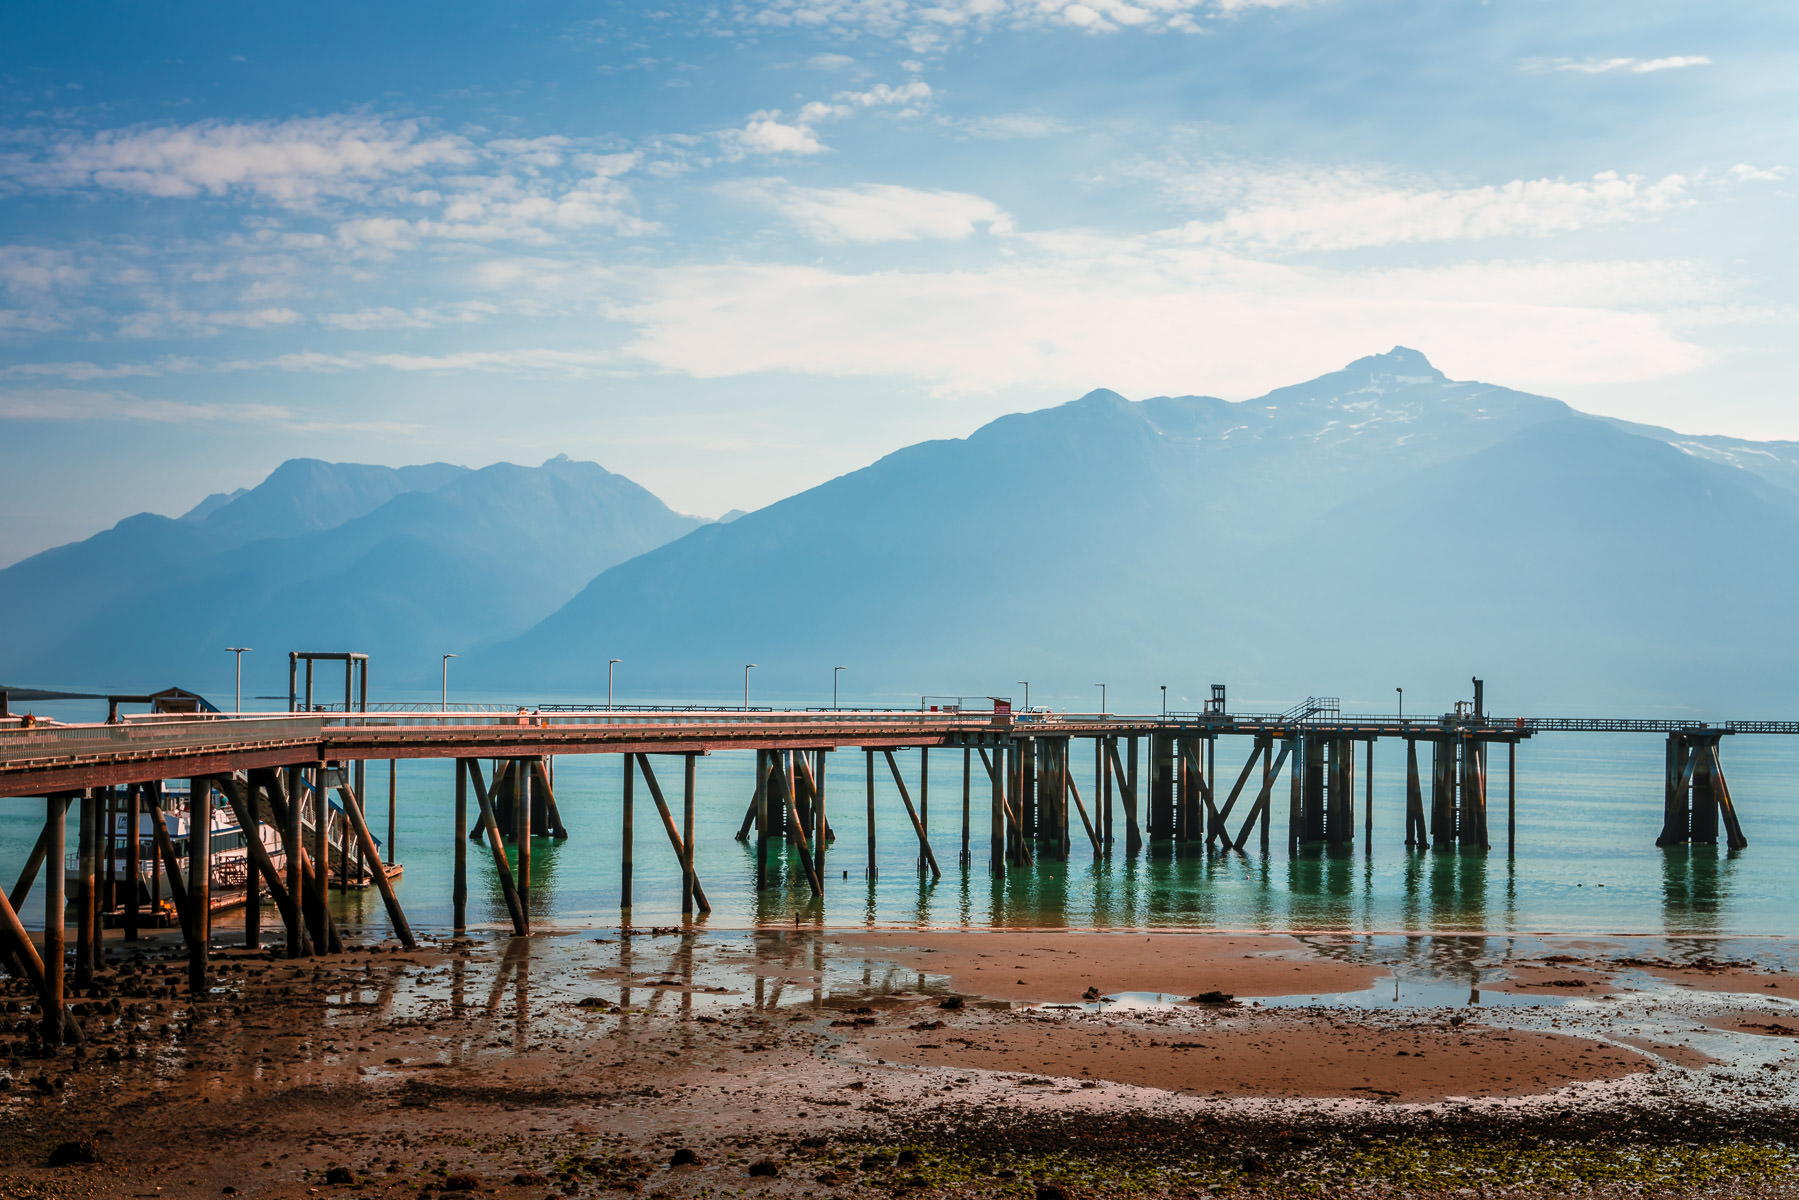 The structure for the floating pier at Haines, Alaska, is designed to account for tidal variations of 20 or more feet.